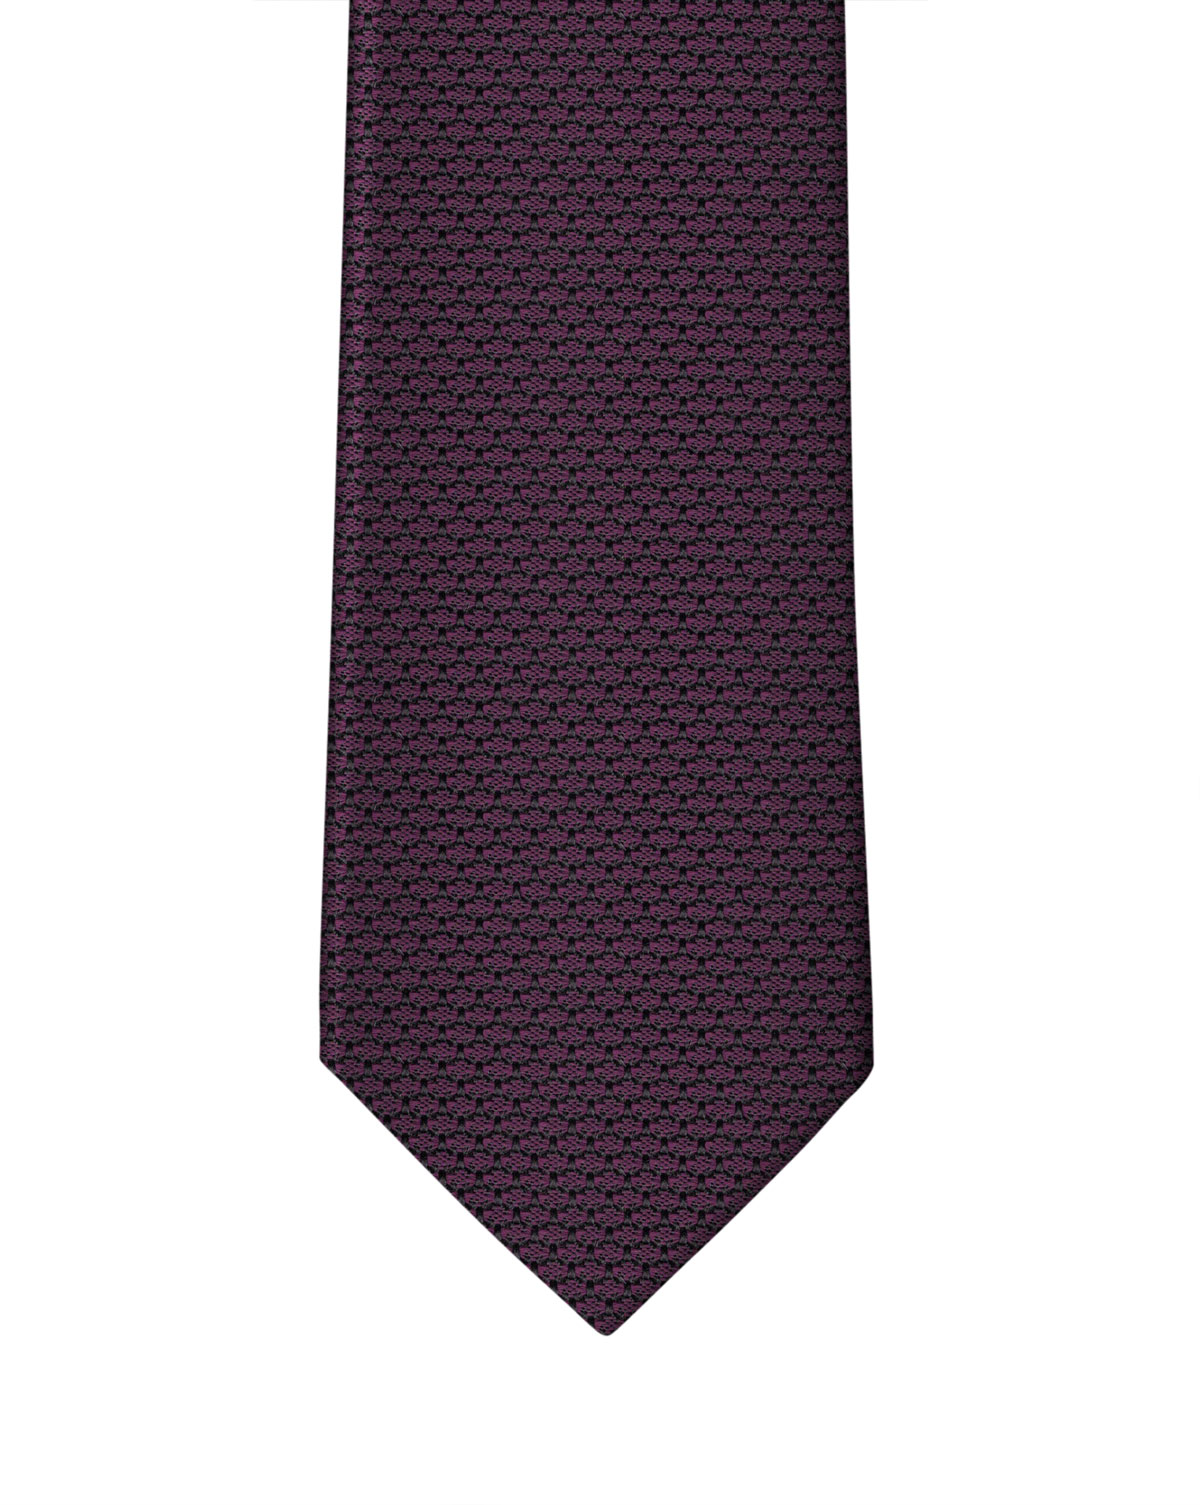 Garnet with Black Grenadine Necktie